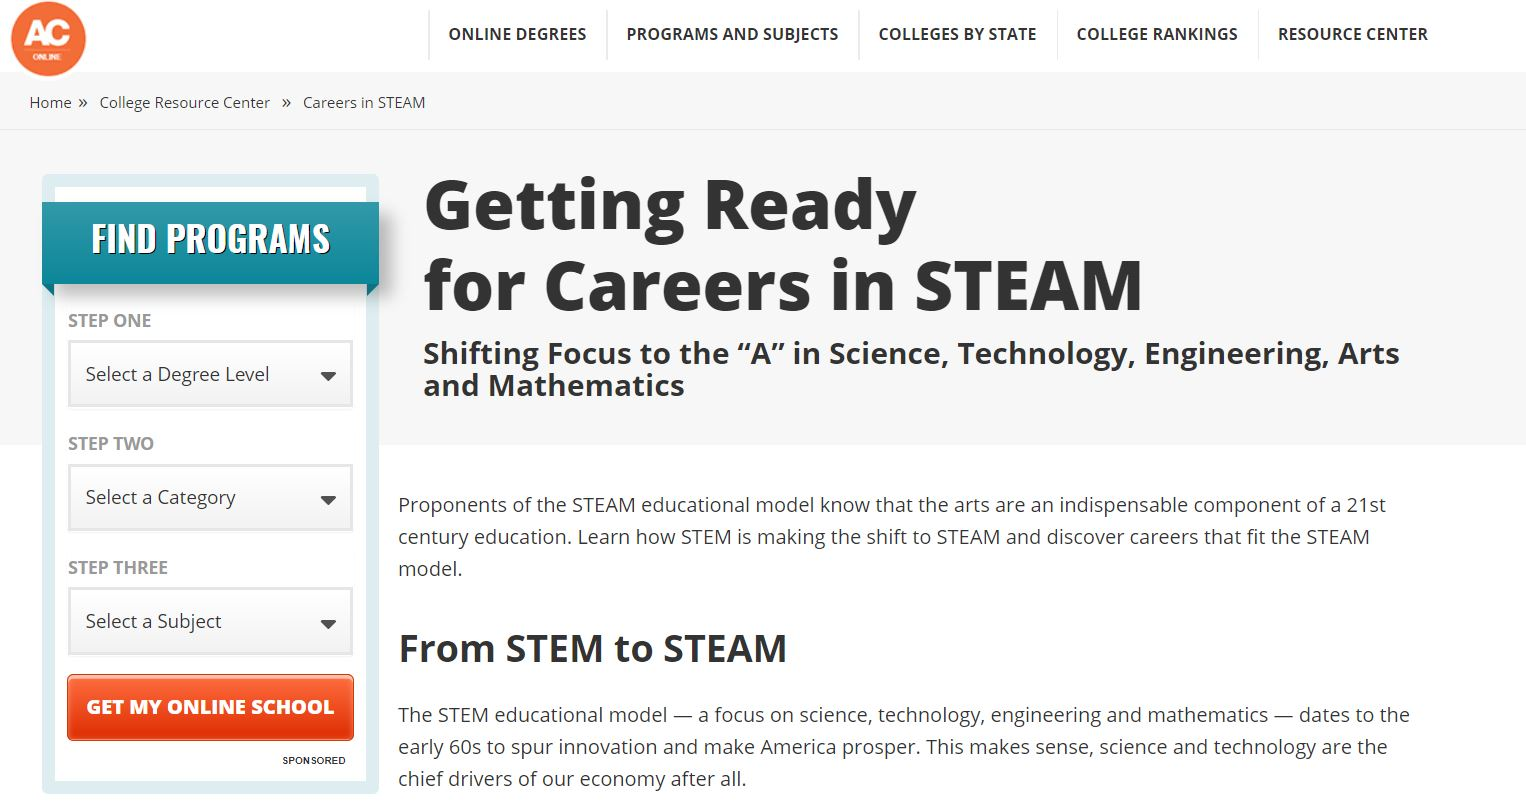 STEAM Careers in Art Schools